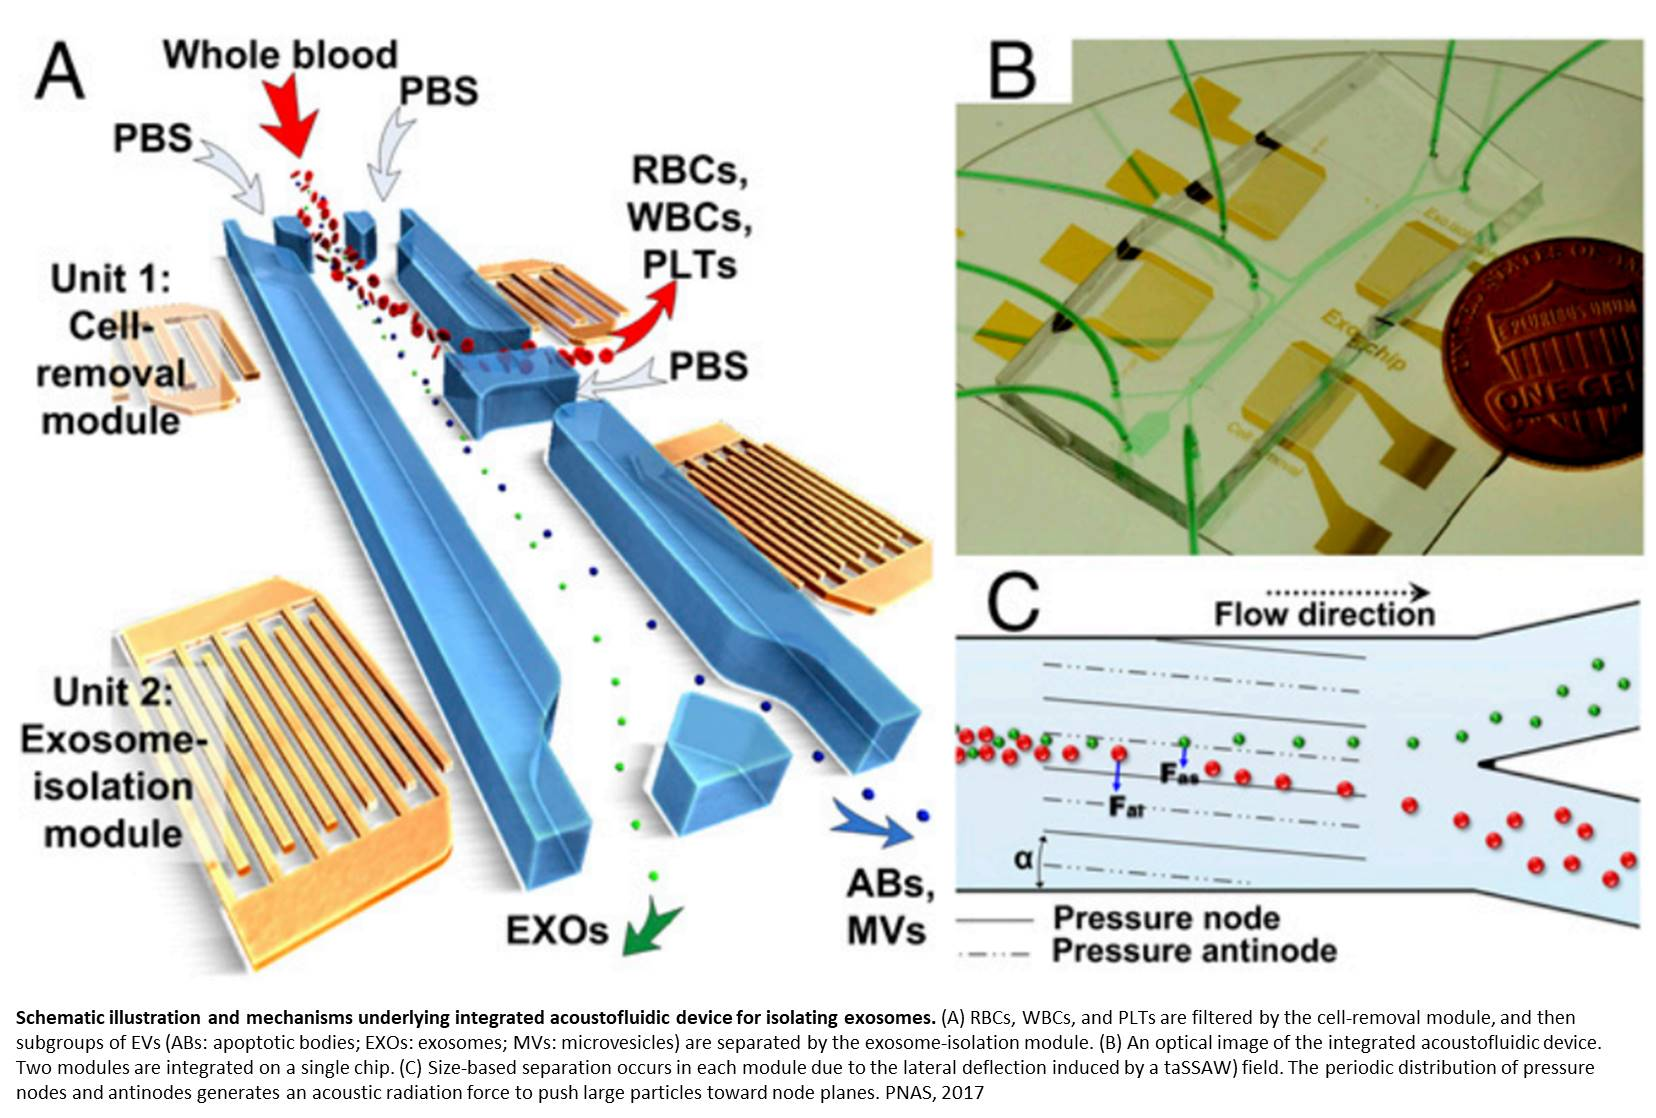 Exosome isolation from whole blood using sound waves and microfluidics